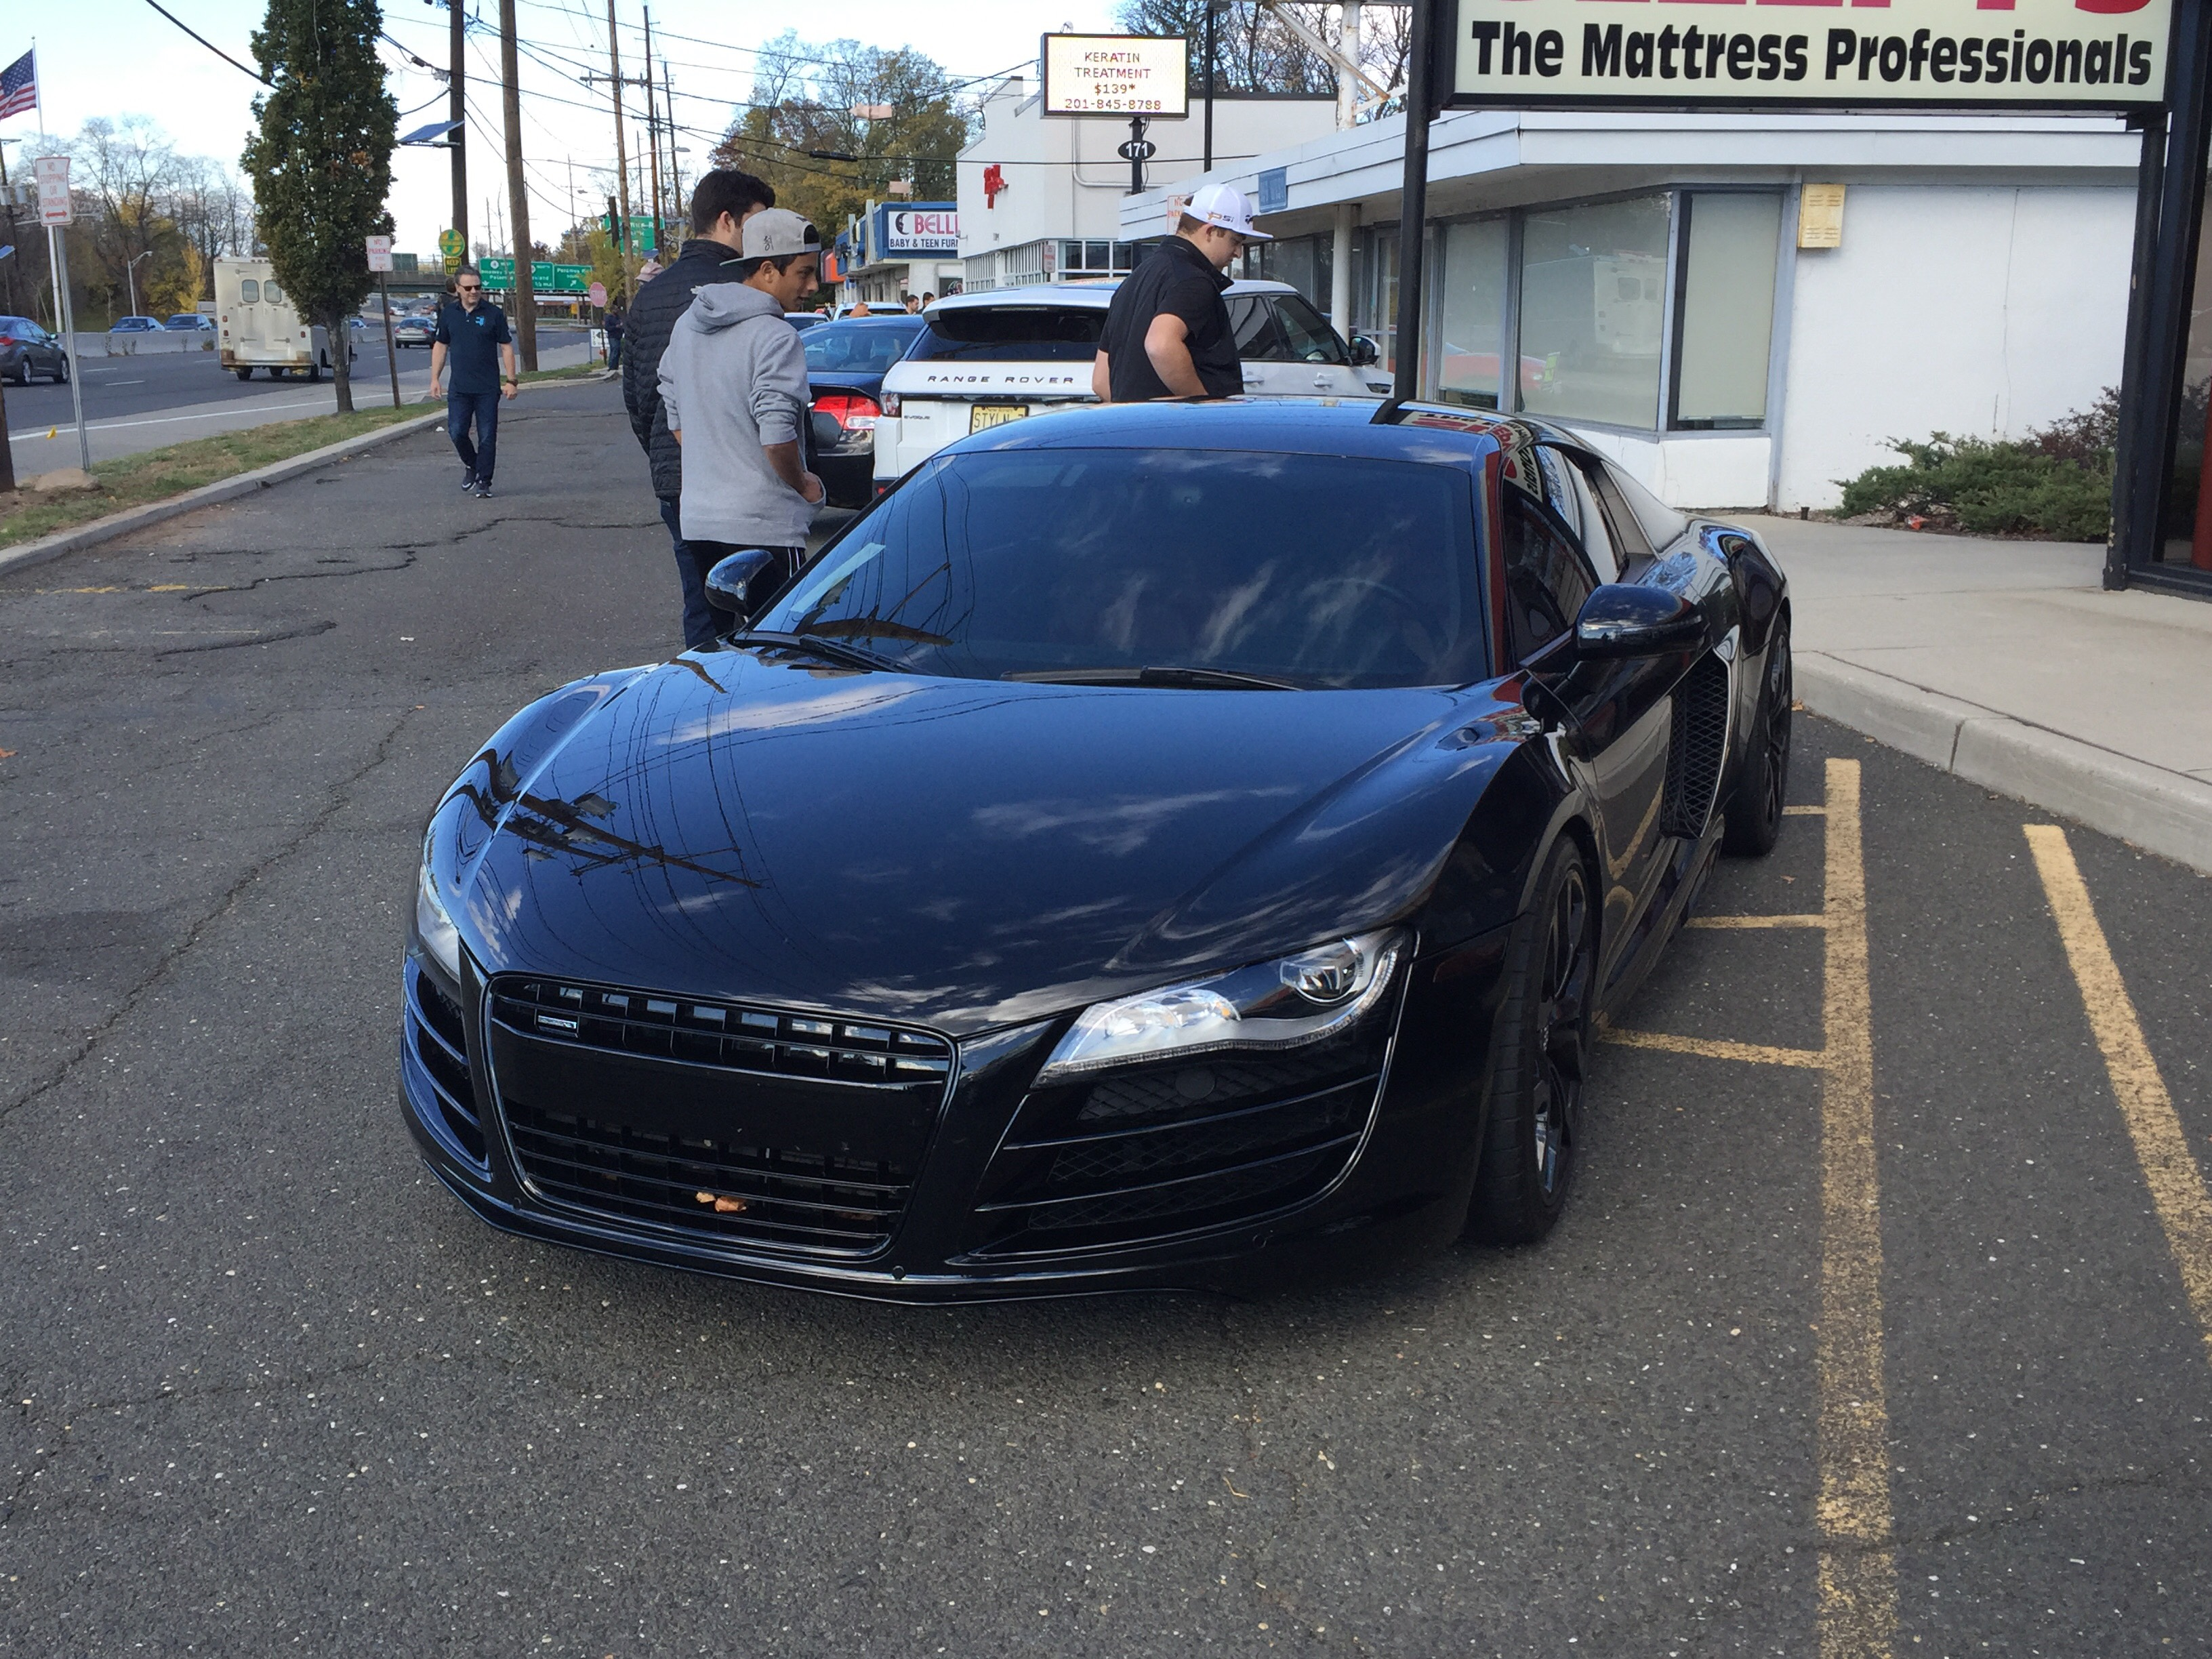 nice blacked out audi r8 at cars and caffe